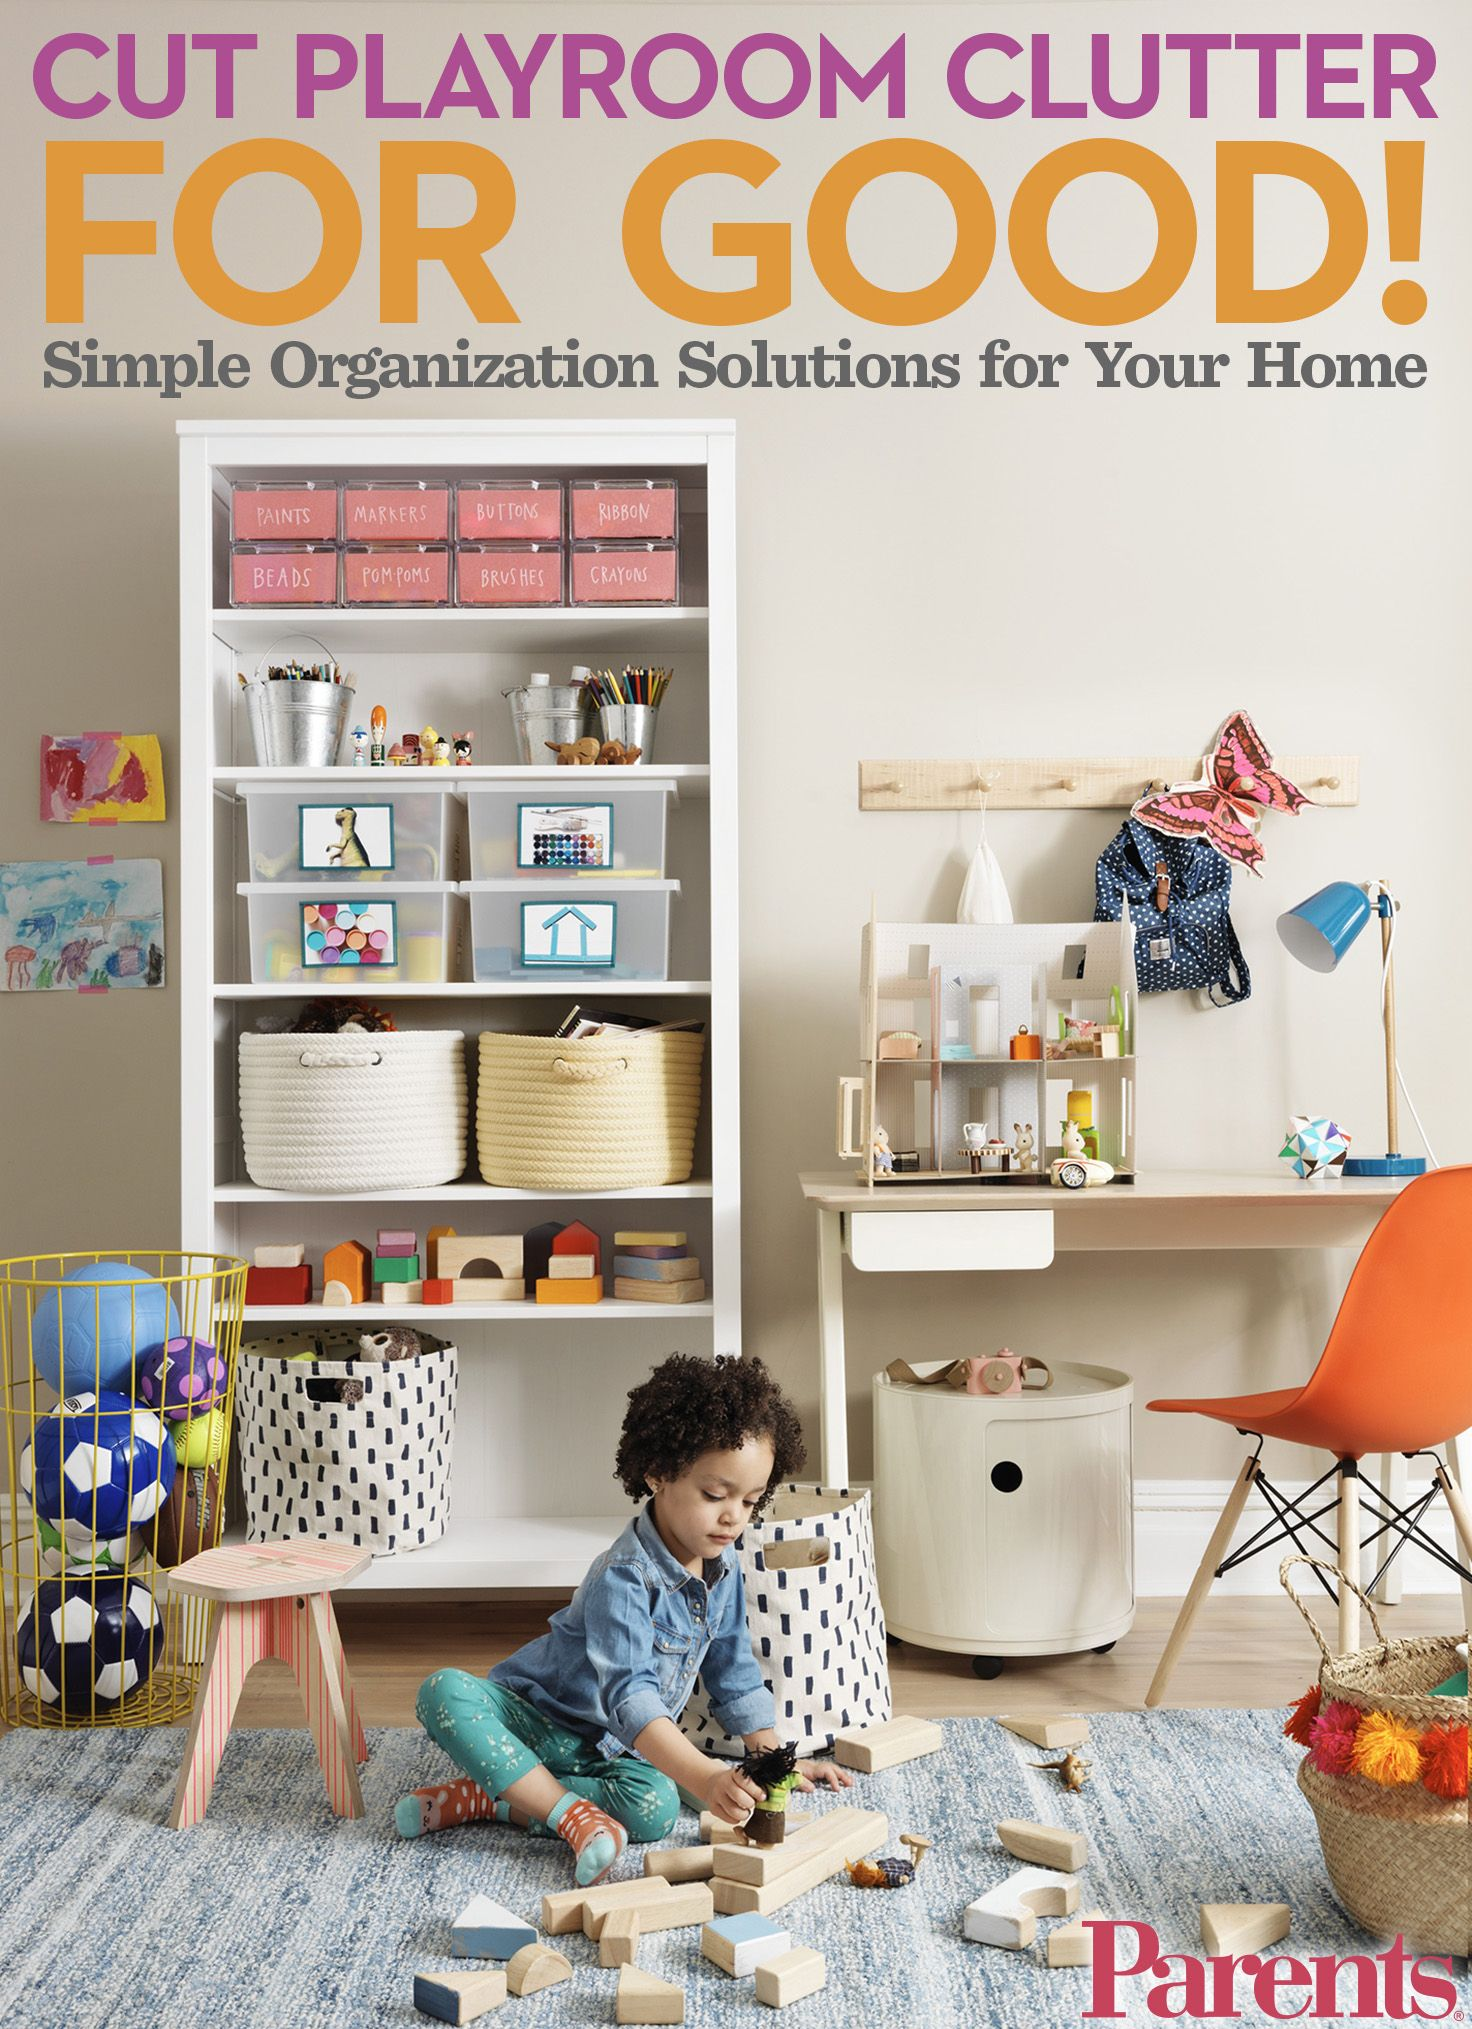 Captivating Get That Playroom In Order With These Simple Tips For Tackling Toy Storage.  #organization